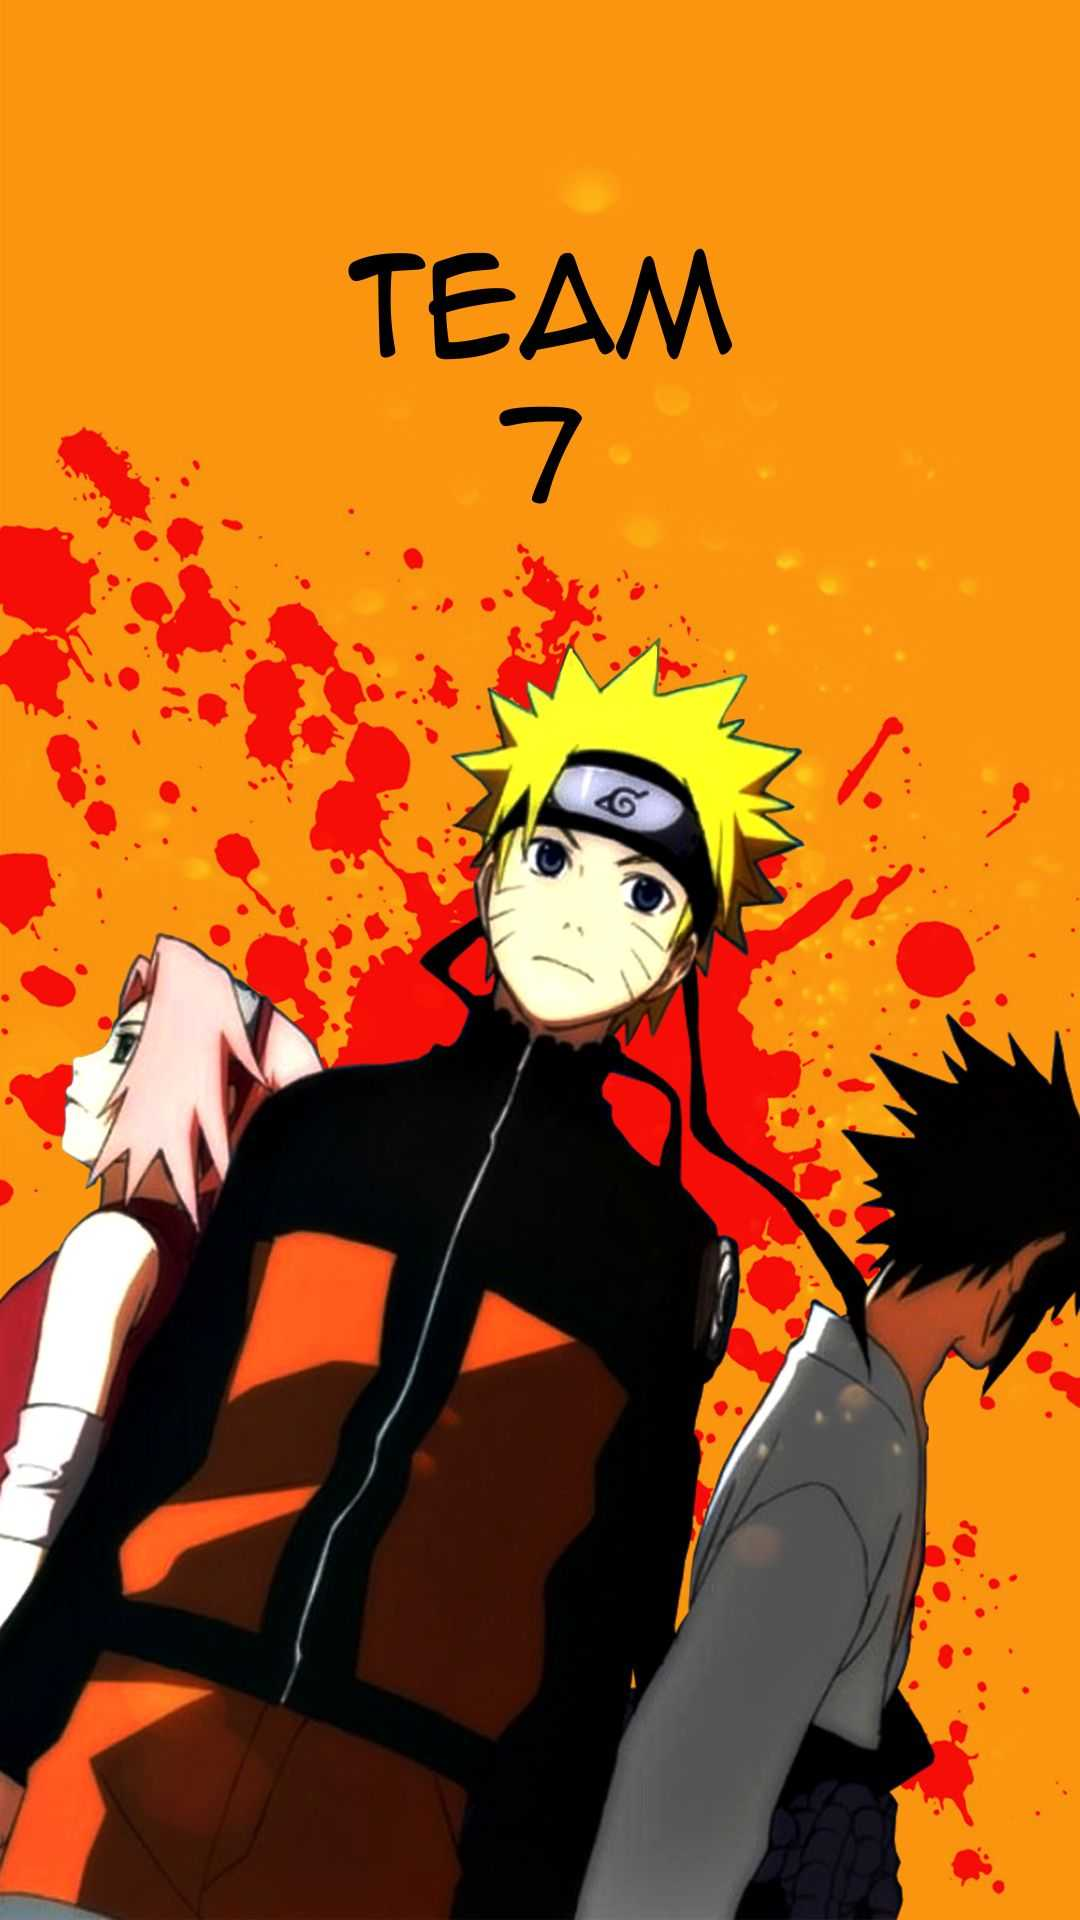 Team 7 Wallpaper Iphone Kolpaper Awesome Free Hd Wallpapers